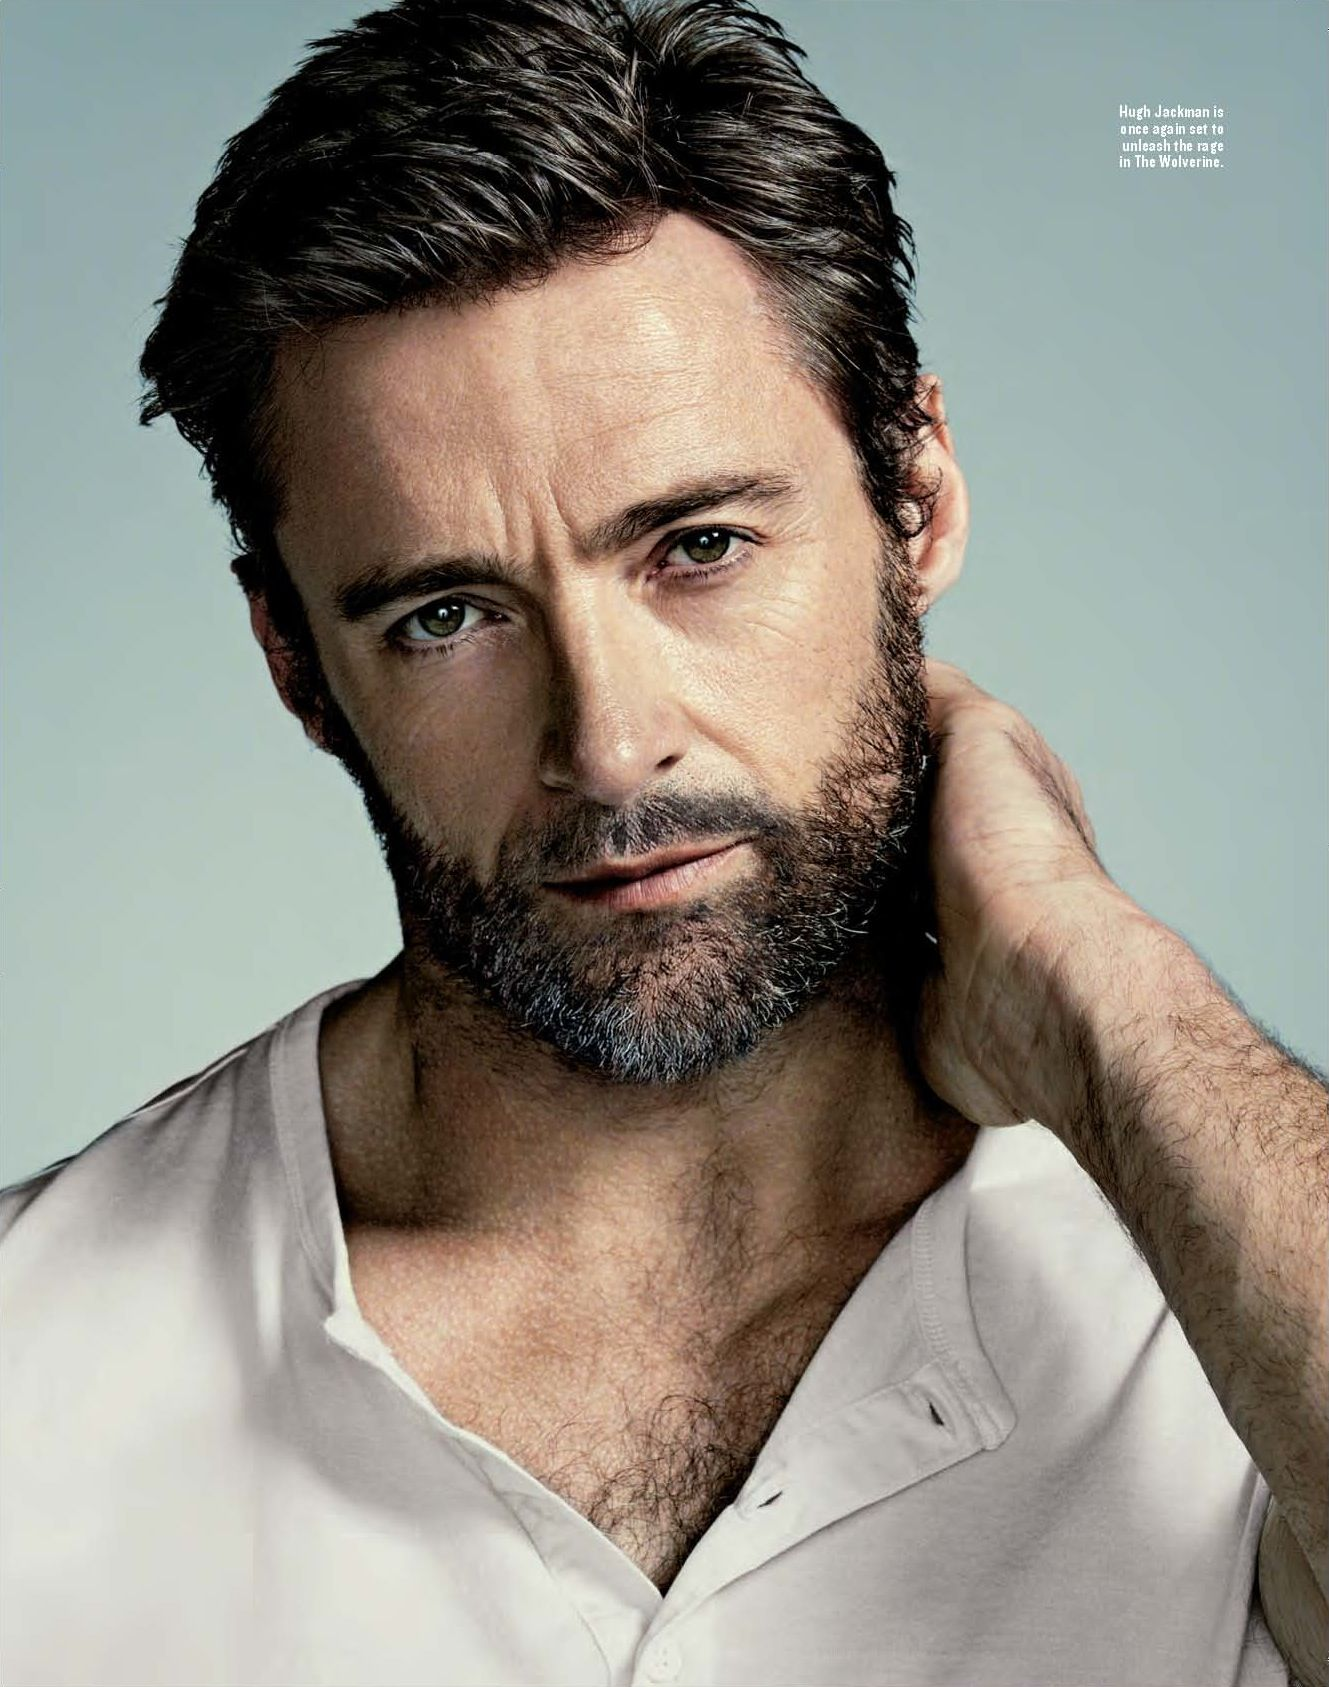 Hugh Jackman On Pinterest Hugh Jackman Peter Pan Movie And Real Steel